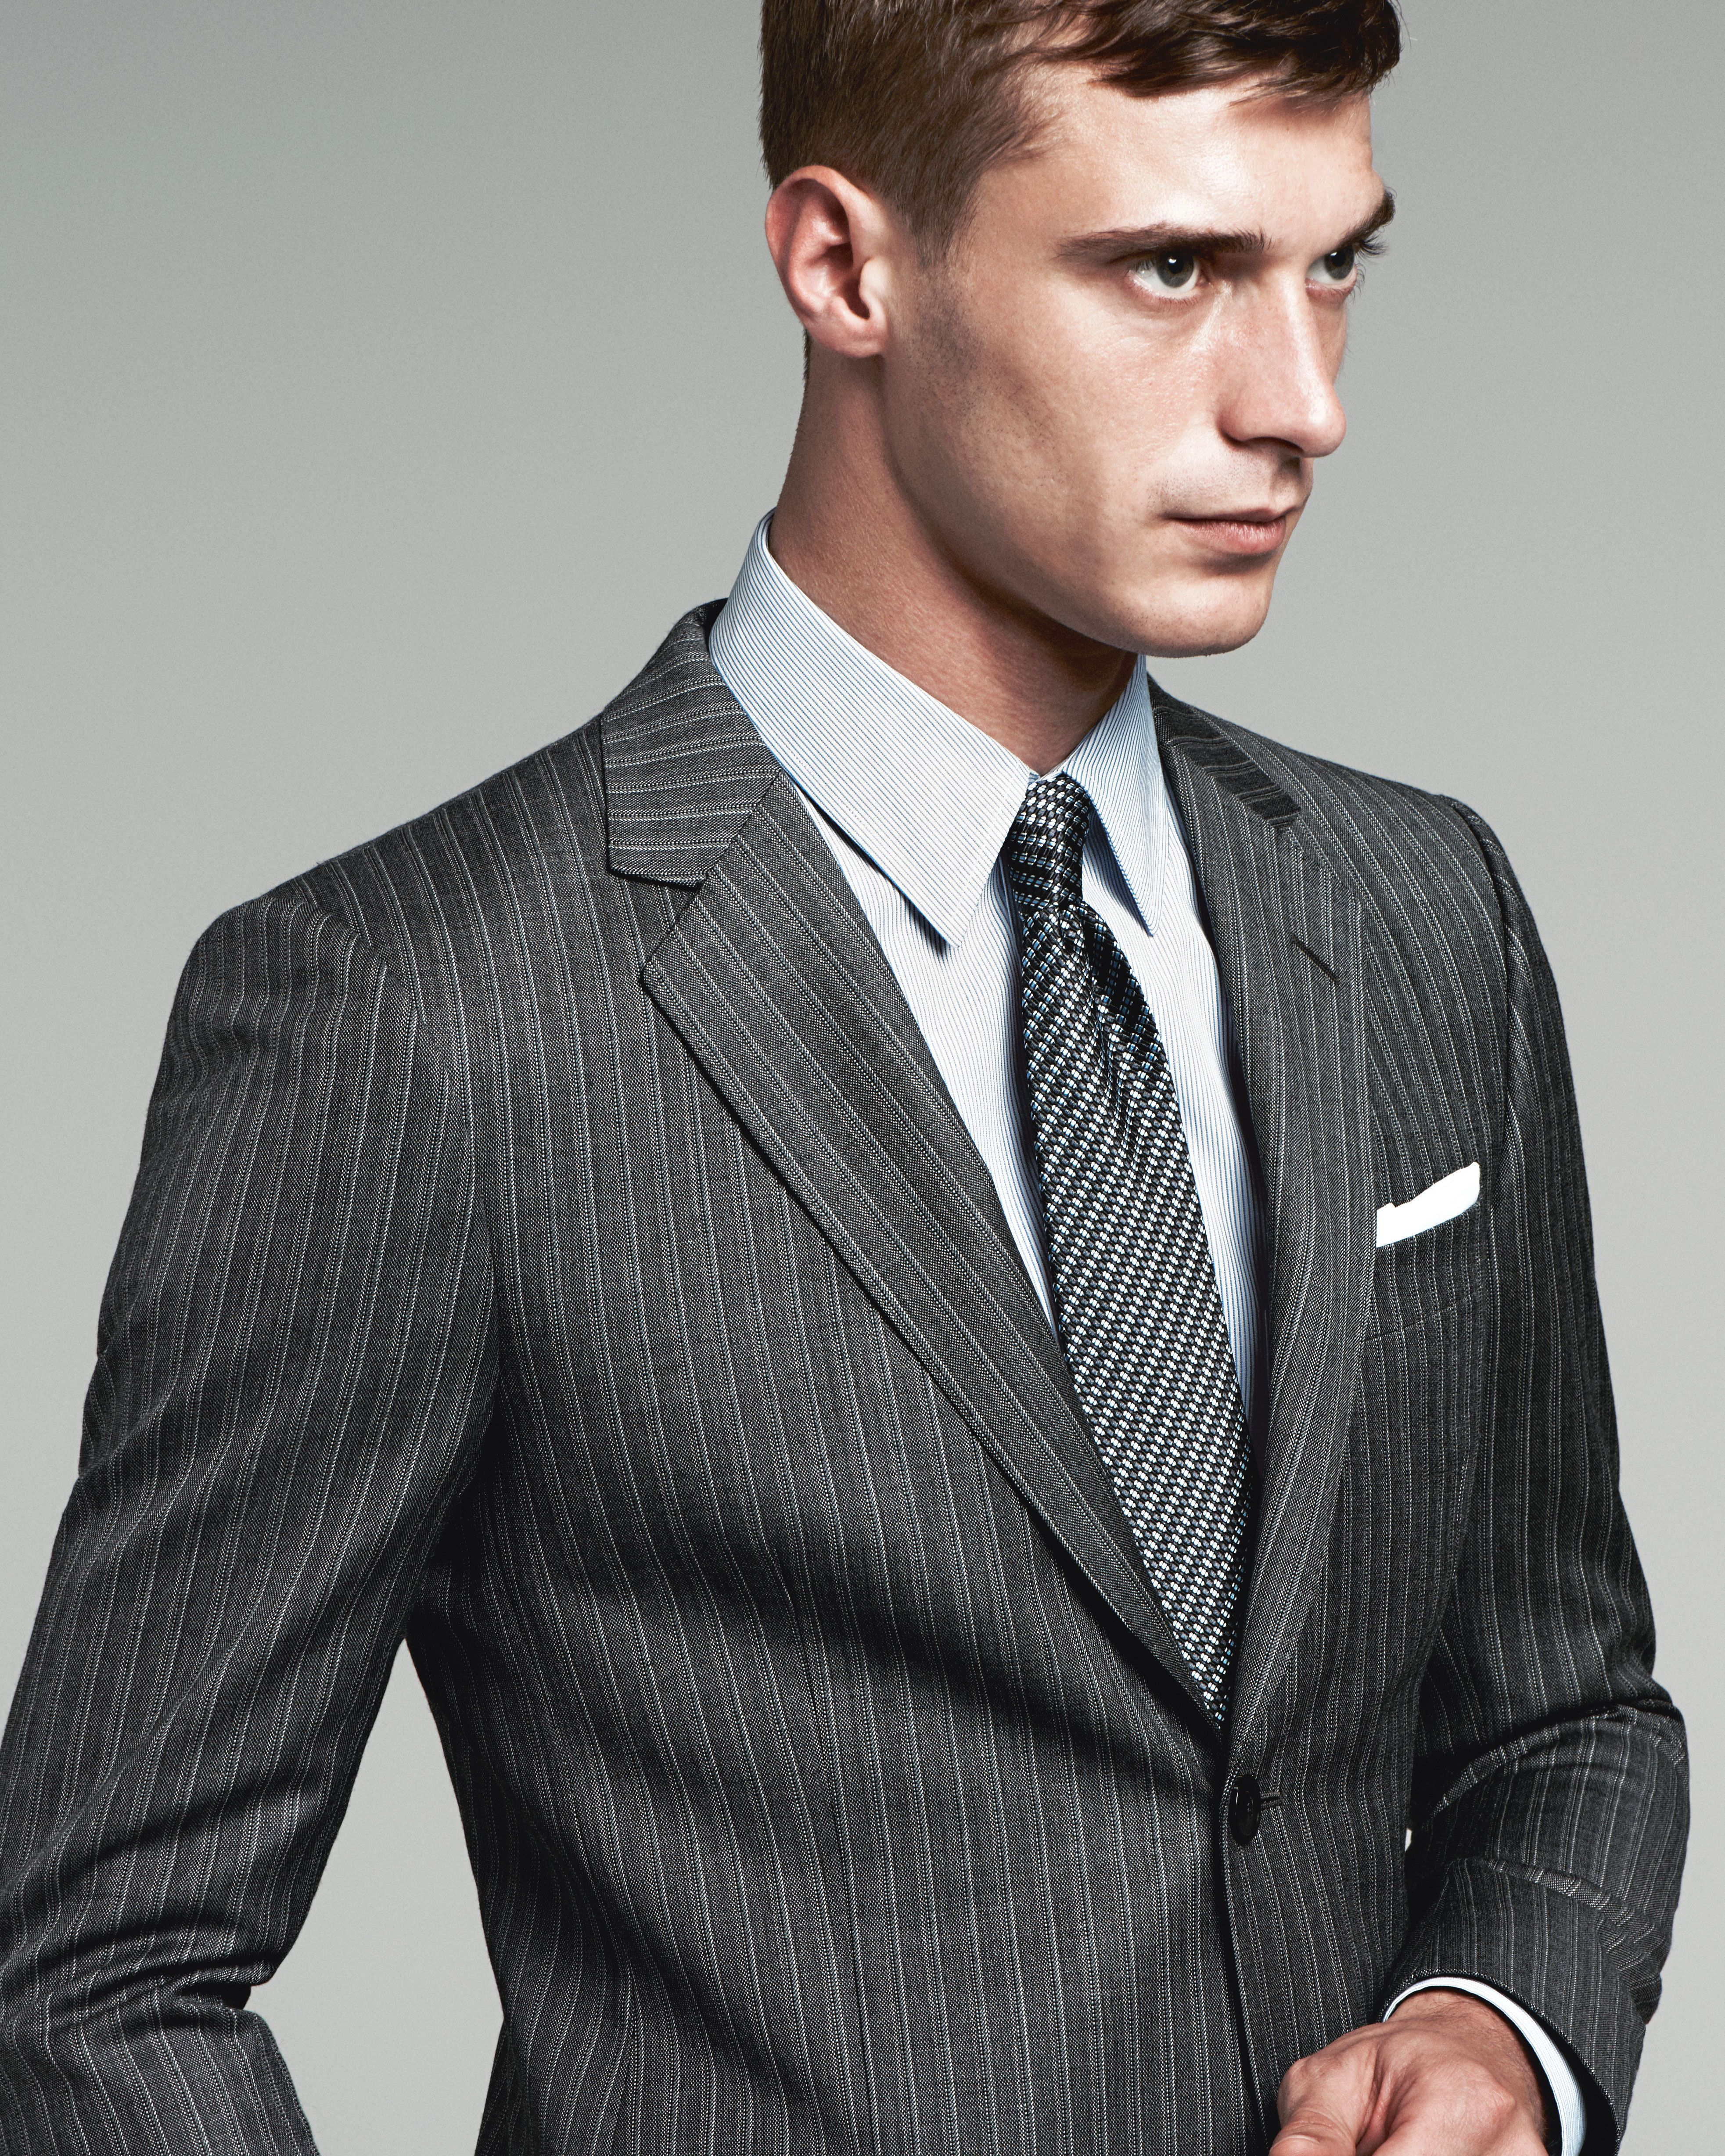 The Brera - At once a traditional and contemporary suit, the ...